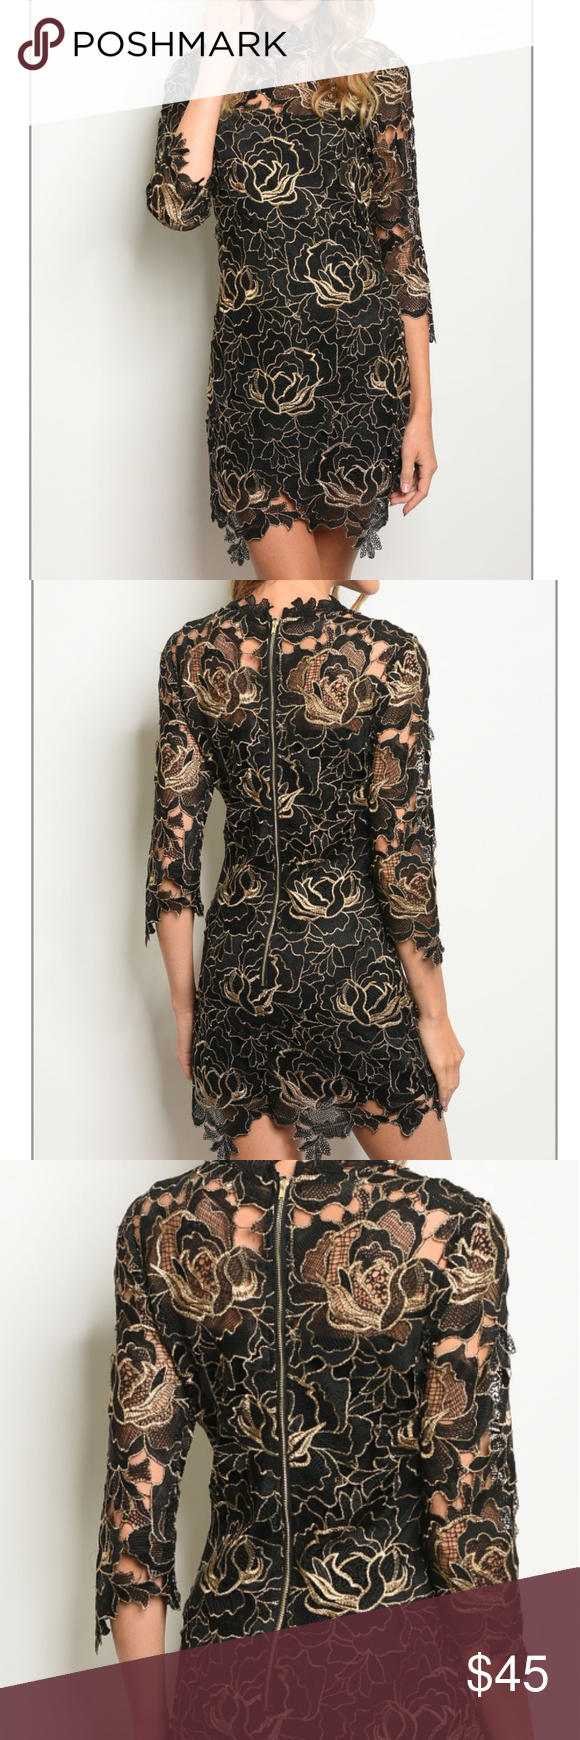 06d3053713 BLACK GOLD LACE DRESS Boutique items Price is firm Long sleeve mock neck  all over lace bodycon dress. Fabric Content  100% POLYESTER Size S  Length  34